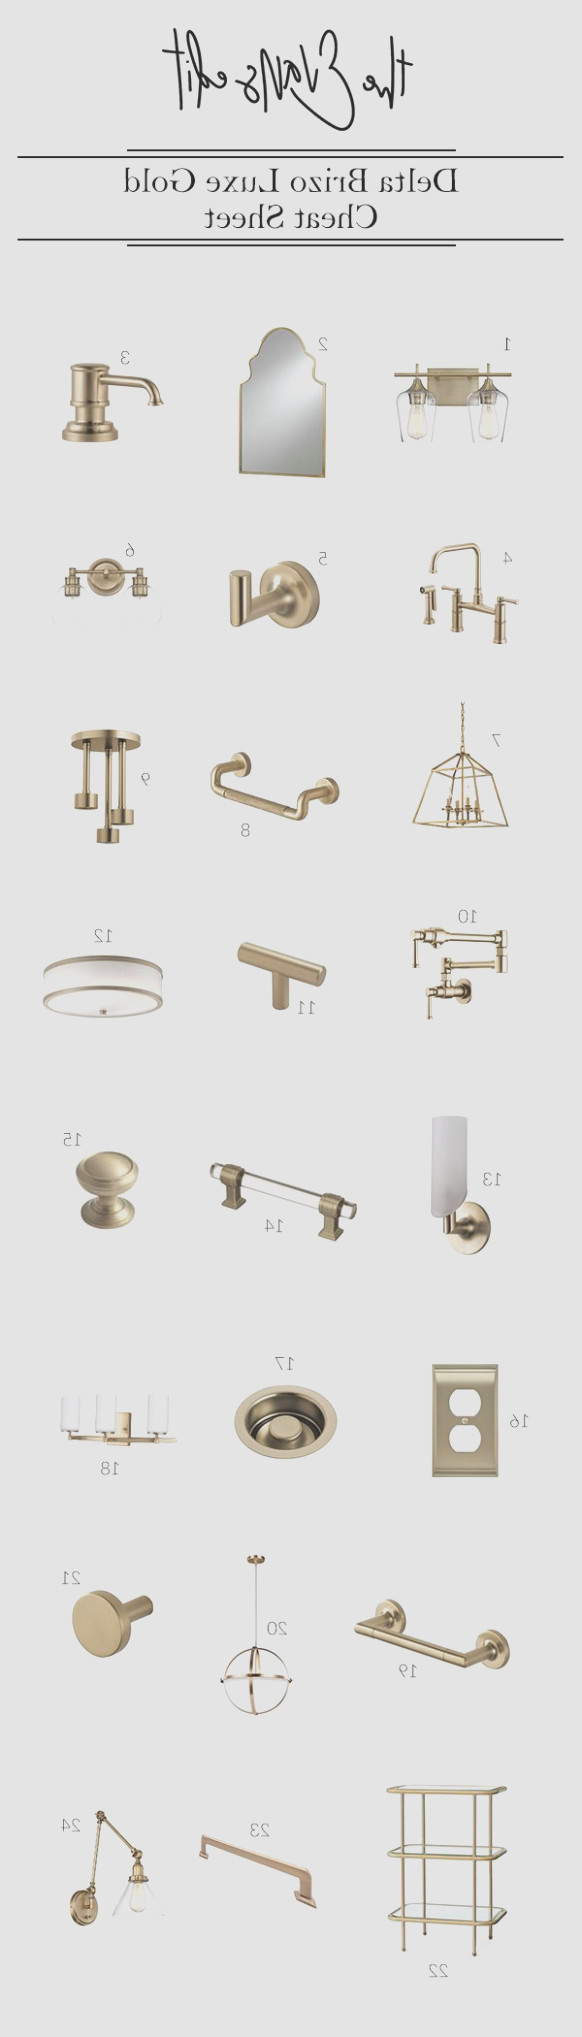 Cabinet Hardware to Match Brizo Luxe Gold